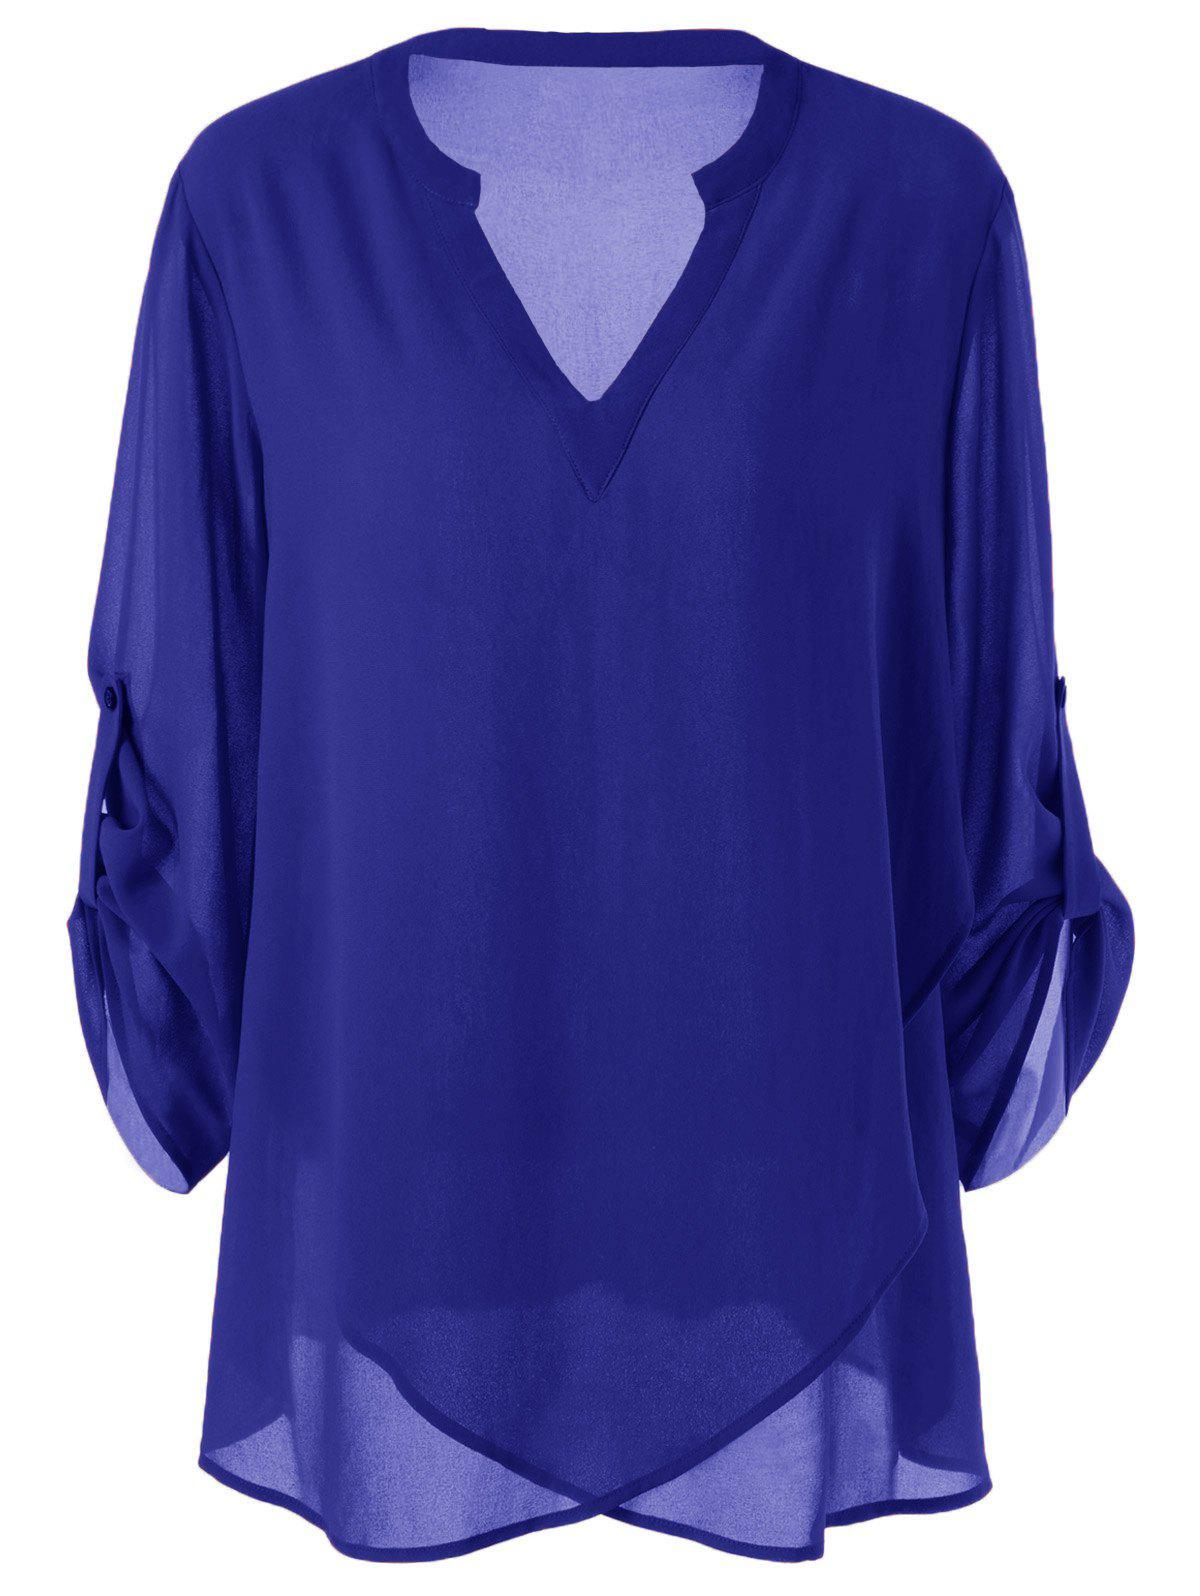 Plus Size Split-Neck Adjustable Sleeve Blouse - BLUE XL